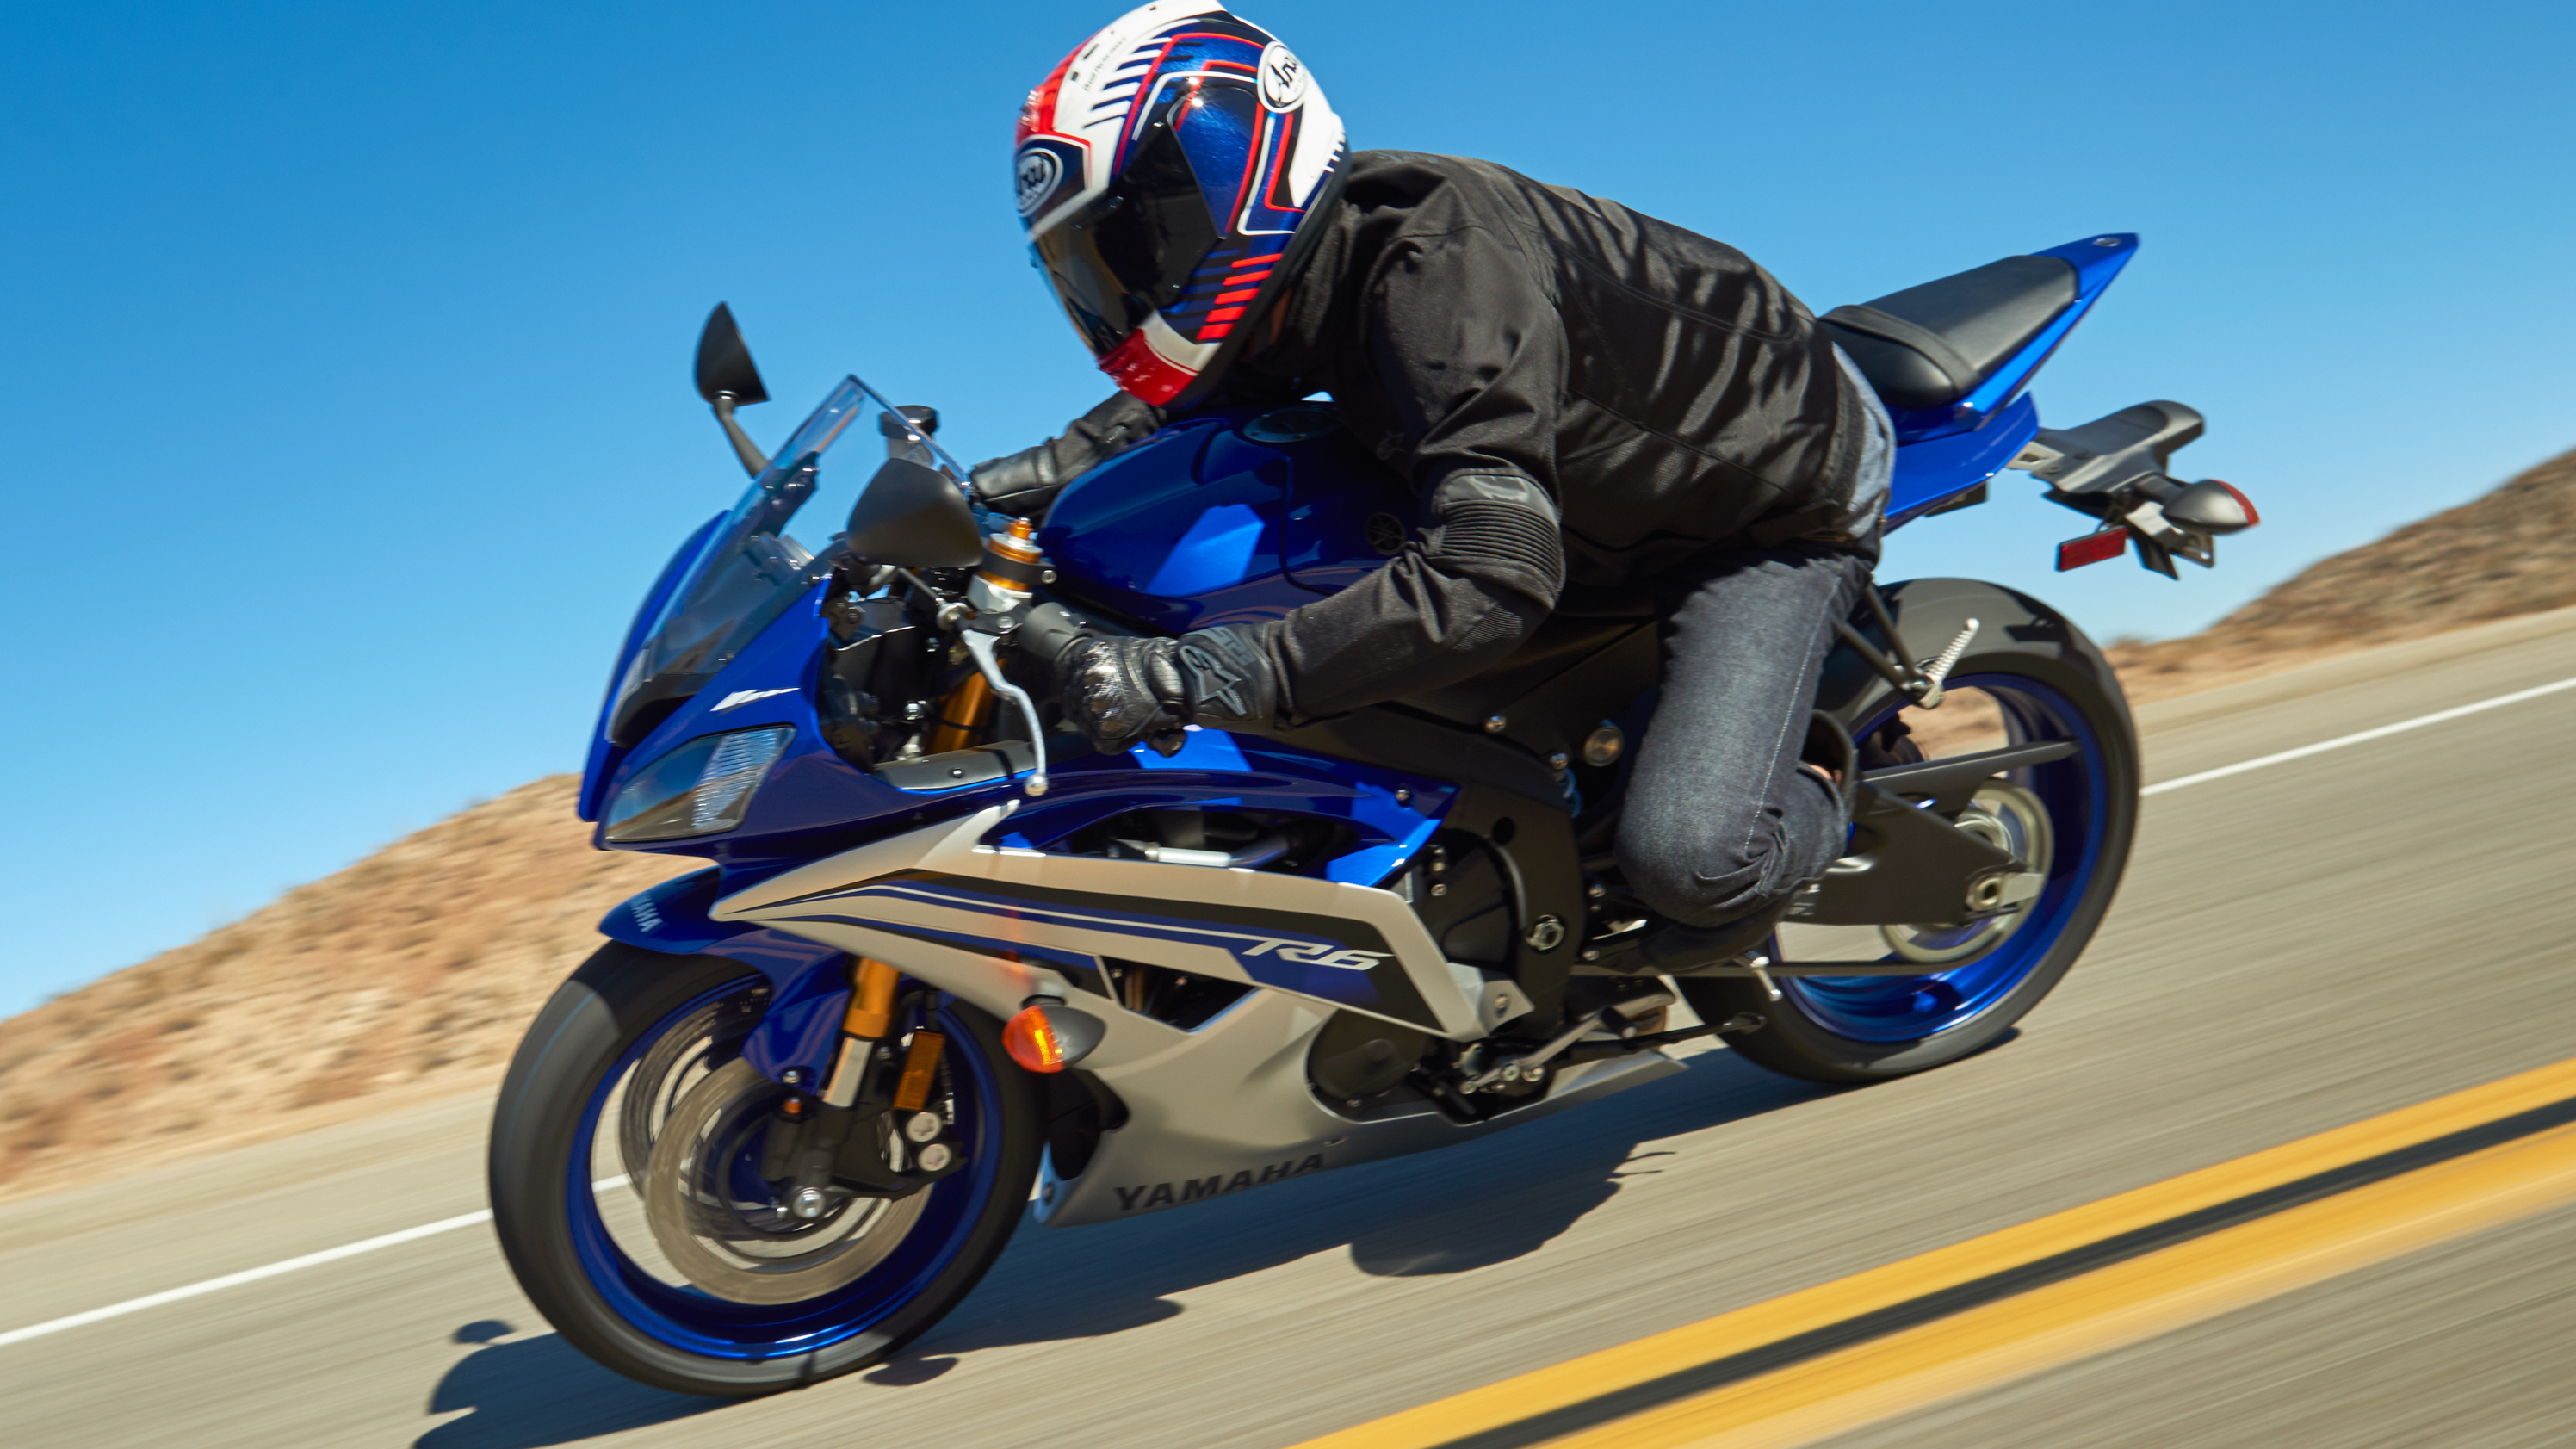 2015 yamaha yzf r6 review gallery top speed. Black Bedroom Furniture Sets. Home Design Ideas